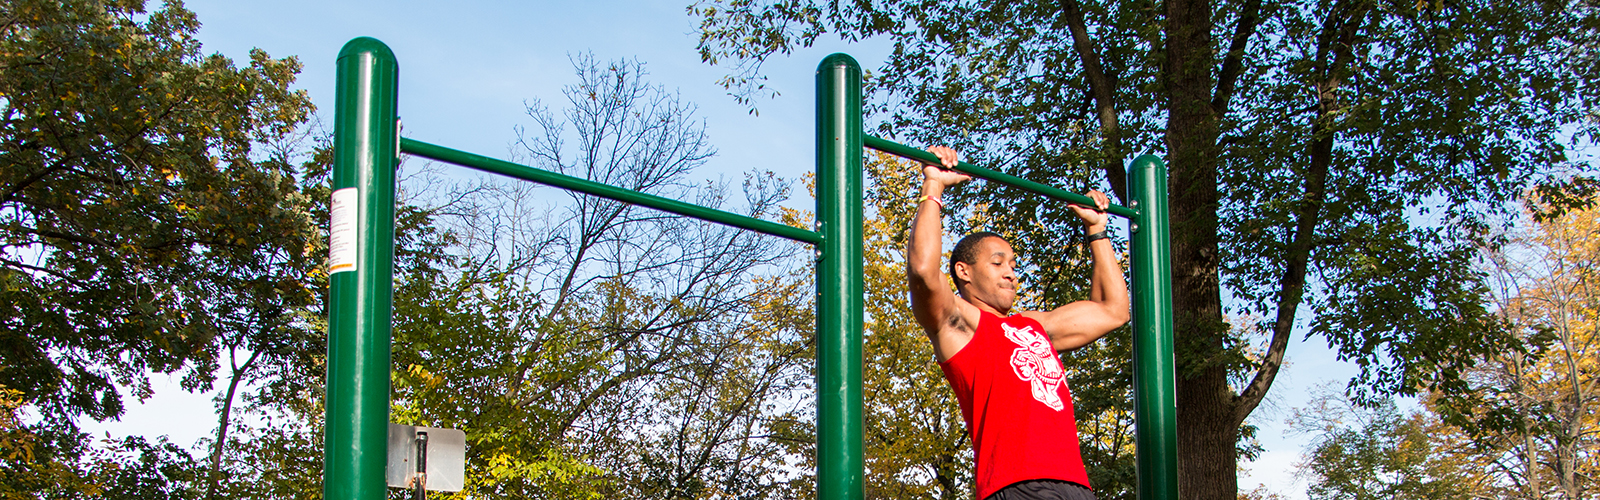 Photo of a man doing pull-ups on fitness trail equipment outdoors